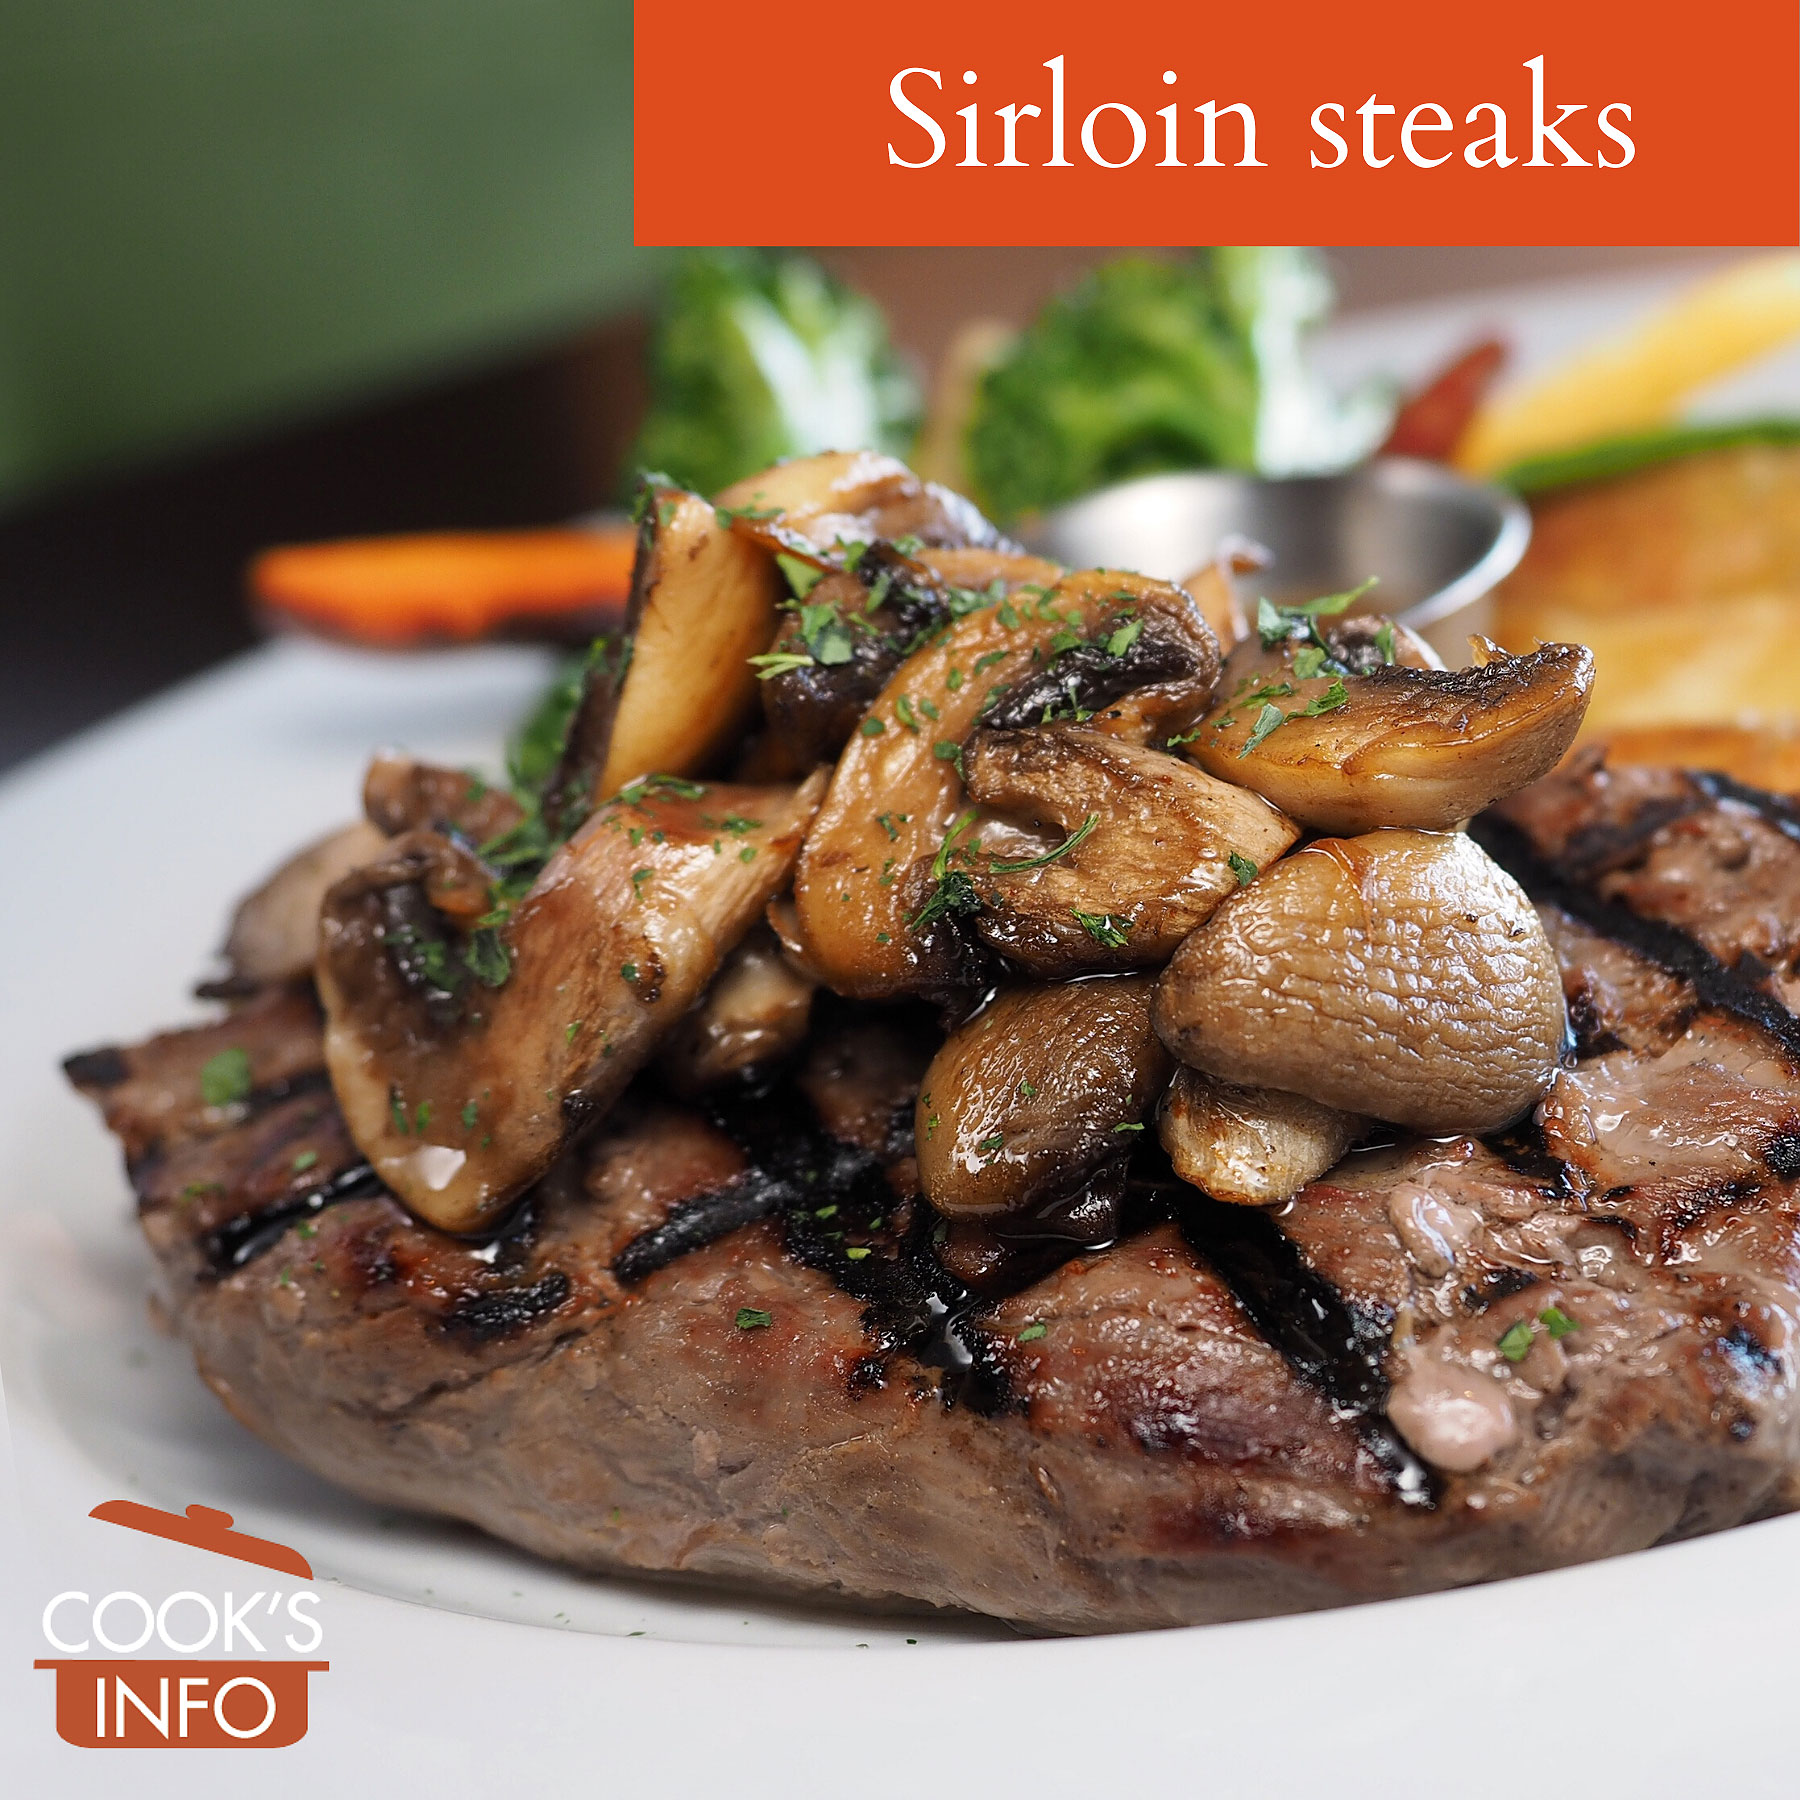 Boneless sirloin steak